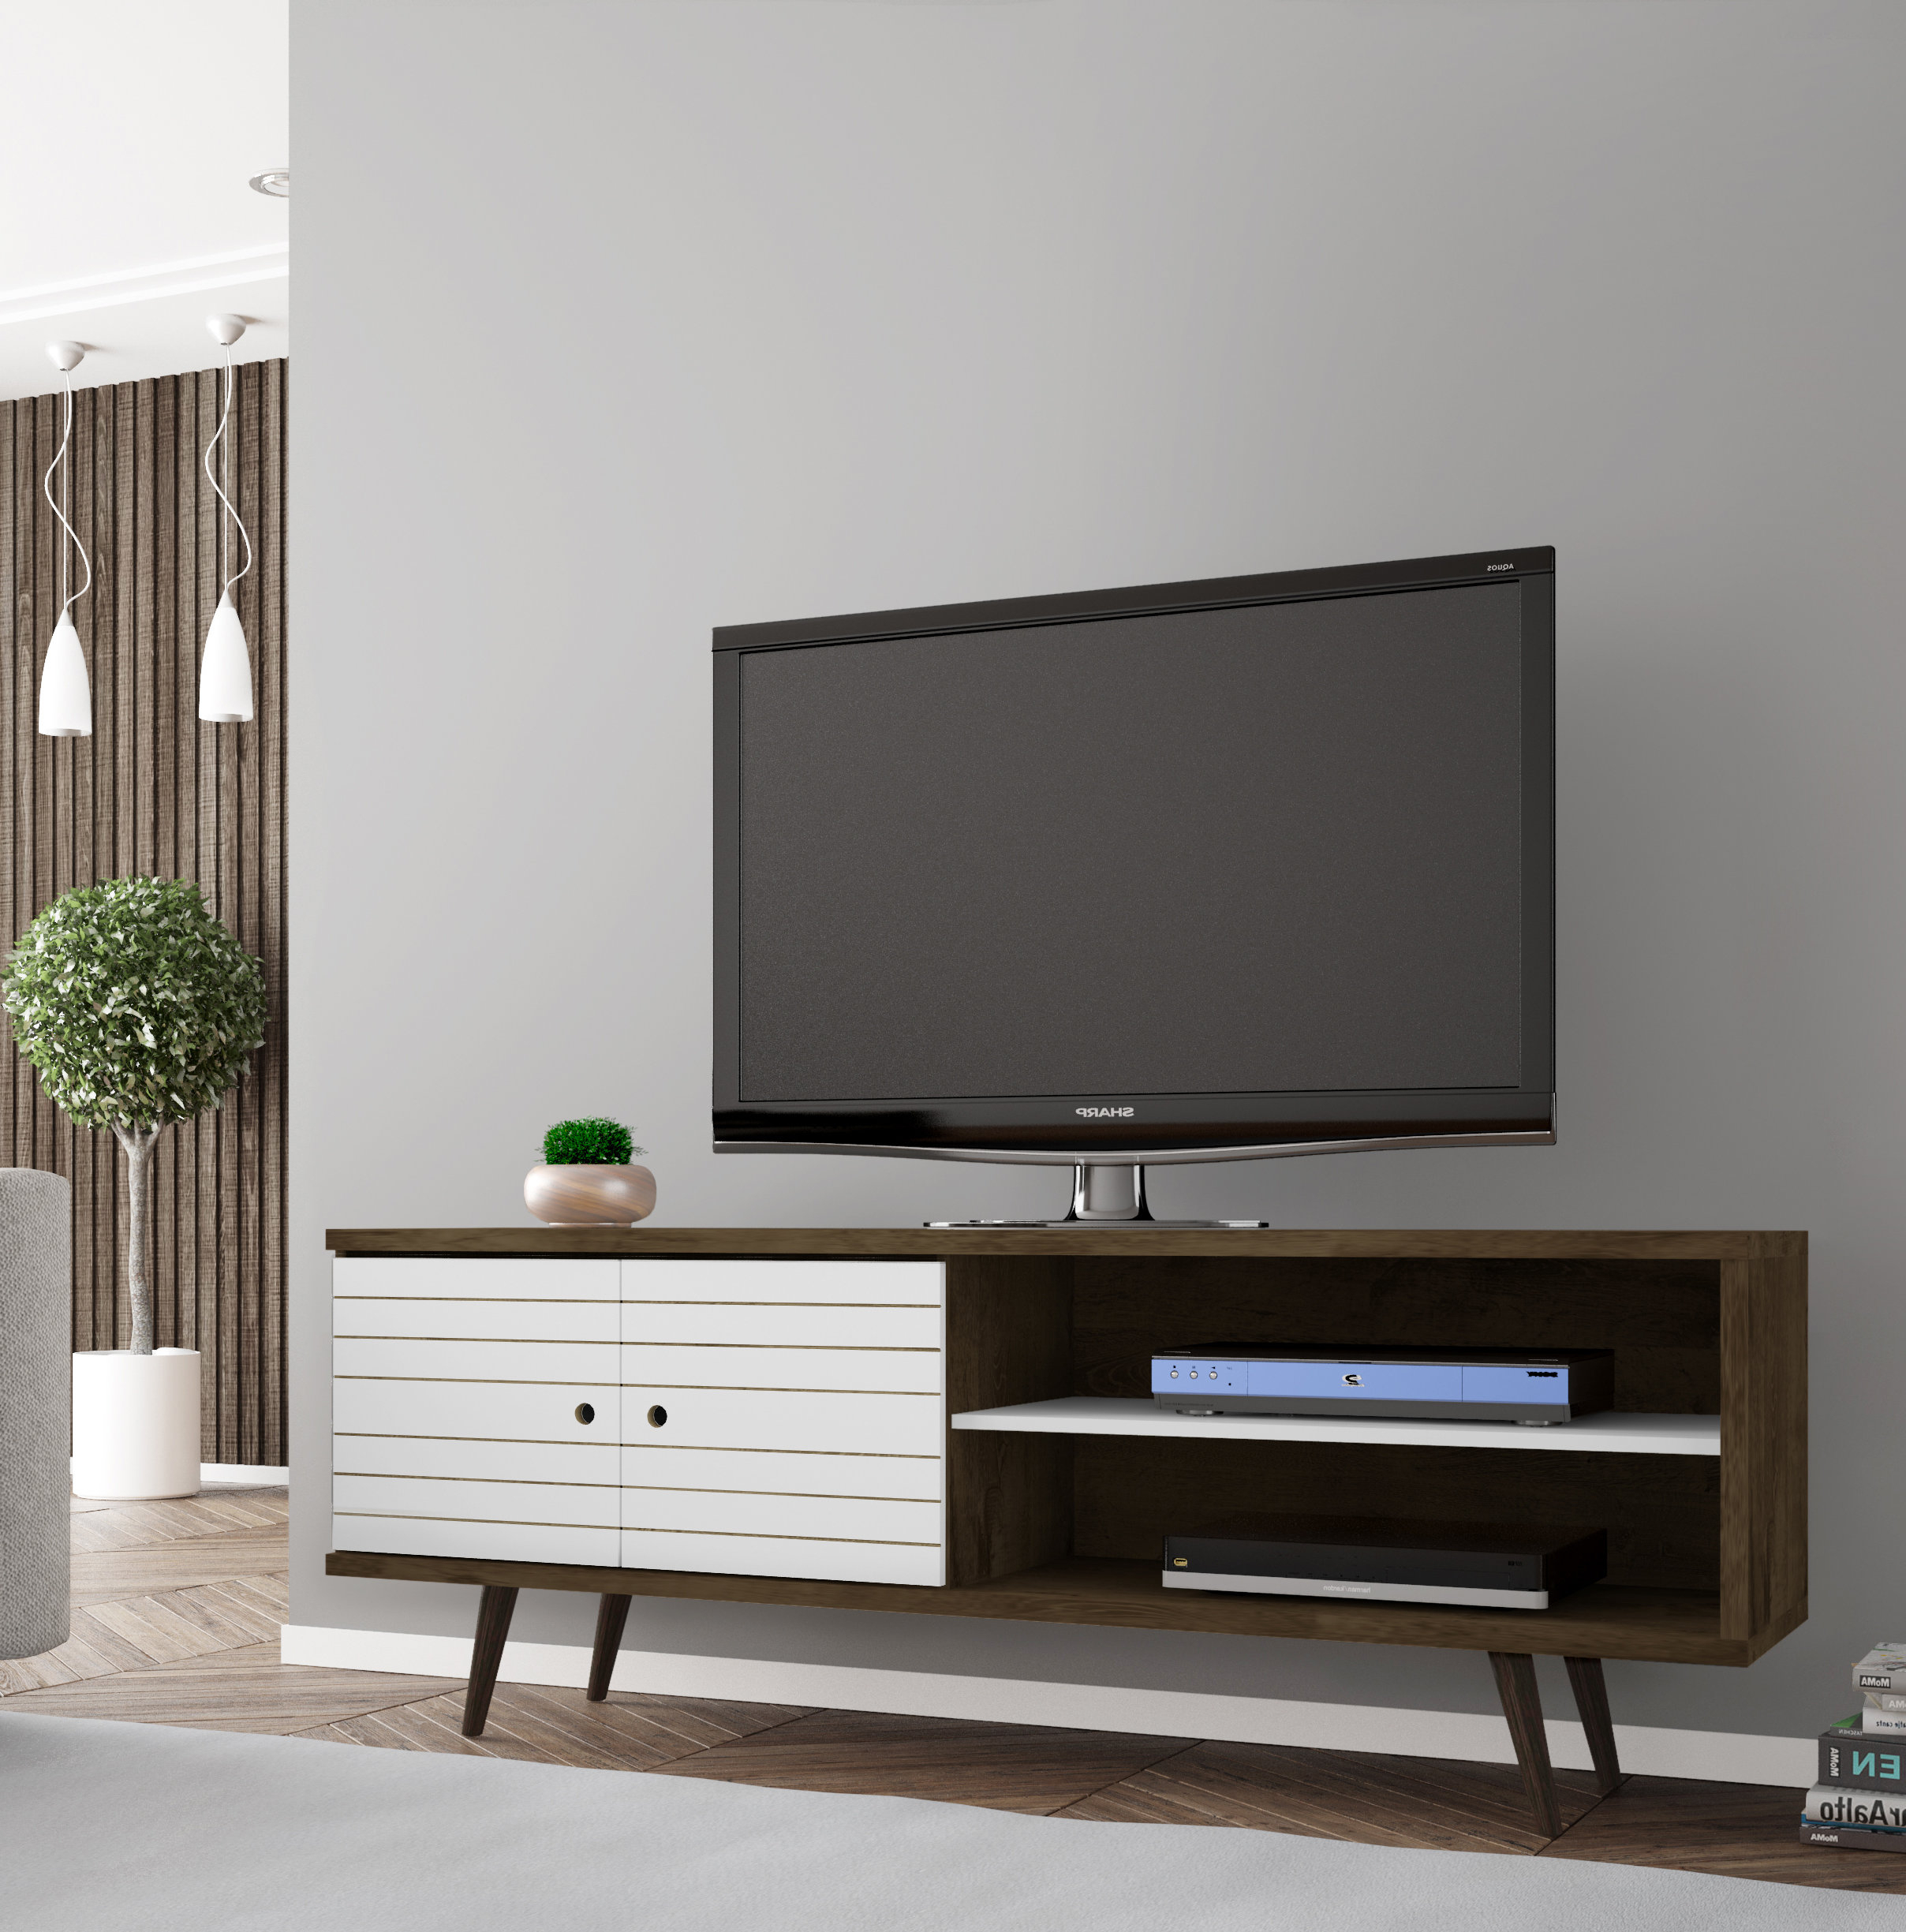 Tv Stands & Entertainment Centers You'll Love With Regard To Well Known Tv Stands With Storage Baskets (View 16 of 20)